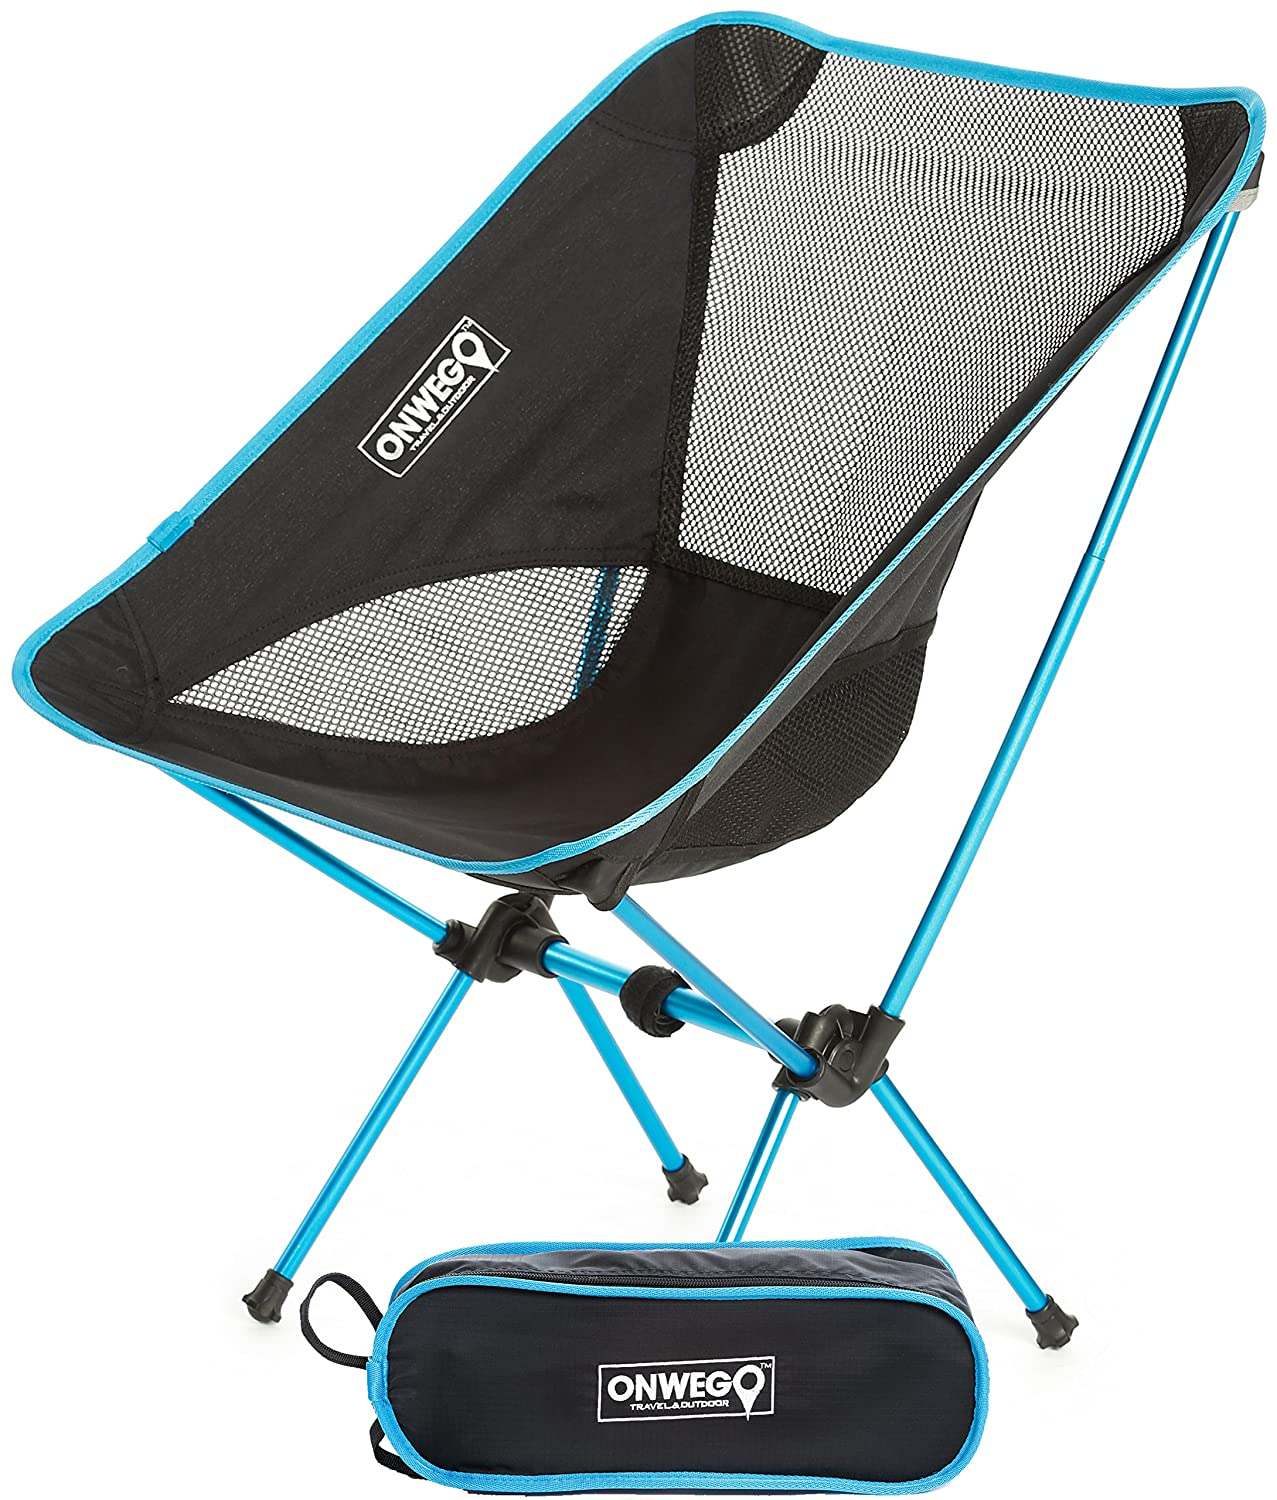 Backpacking chair ultralight - Onwego Ultralight Camping And Outdoor Chair